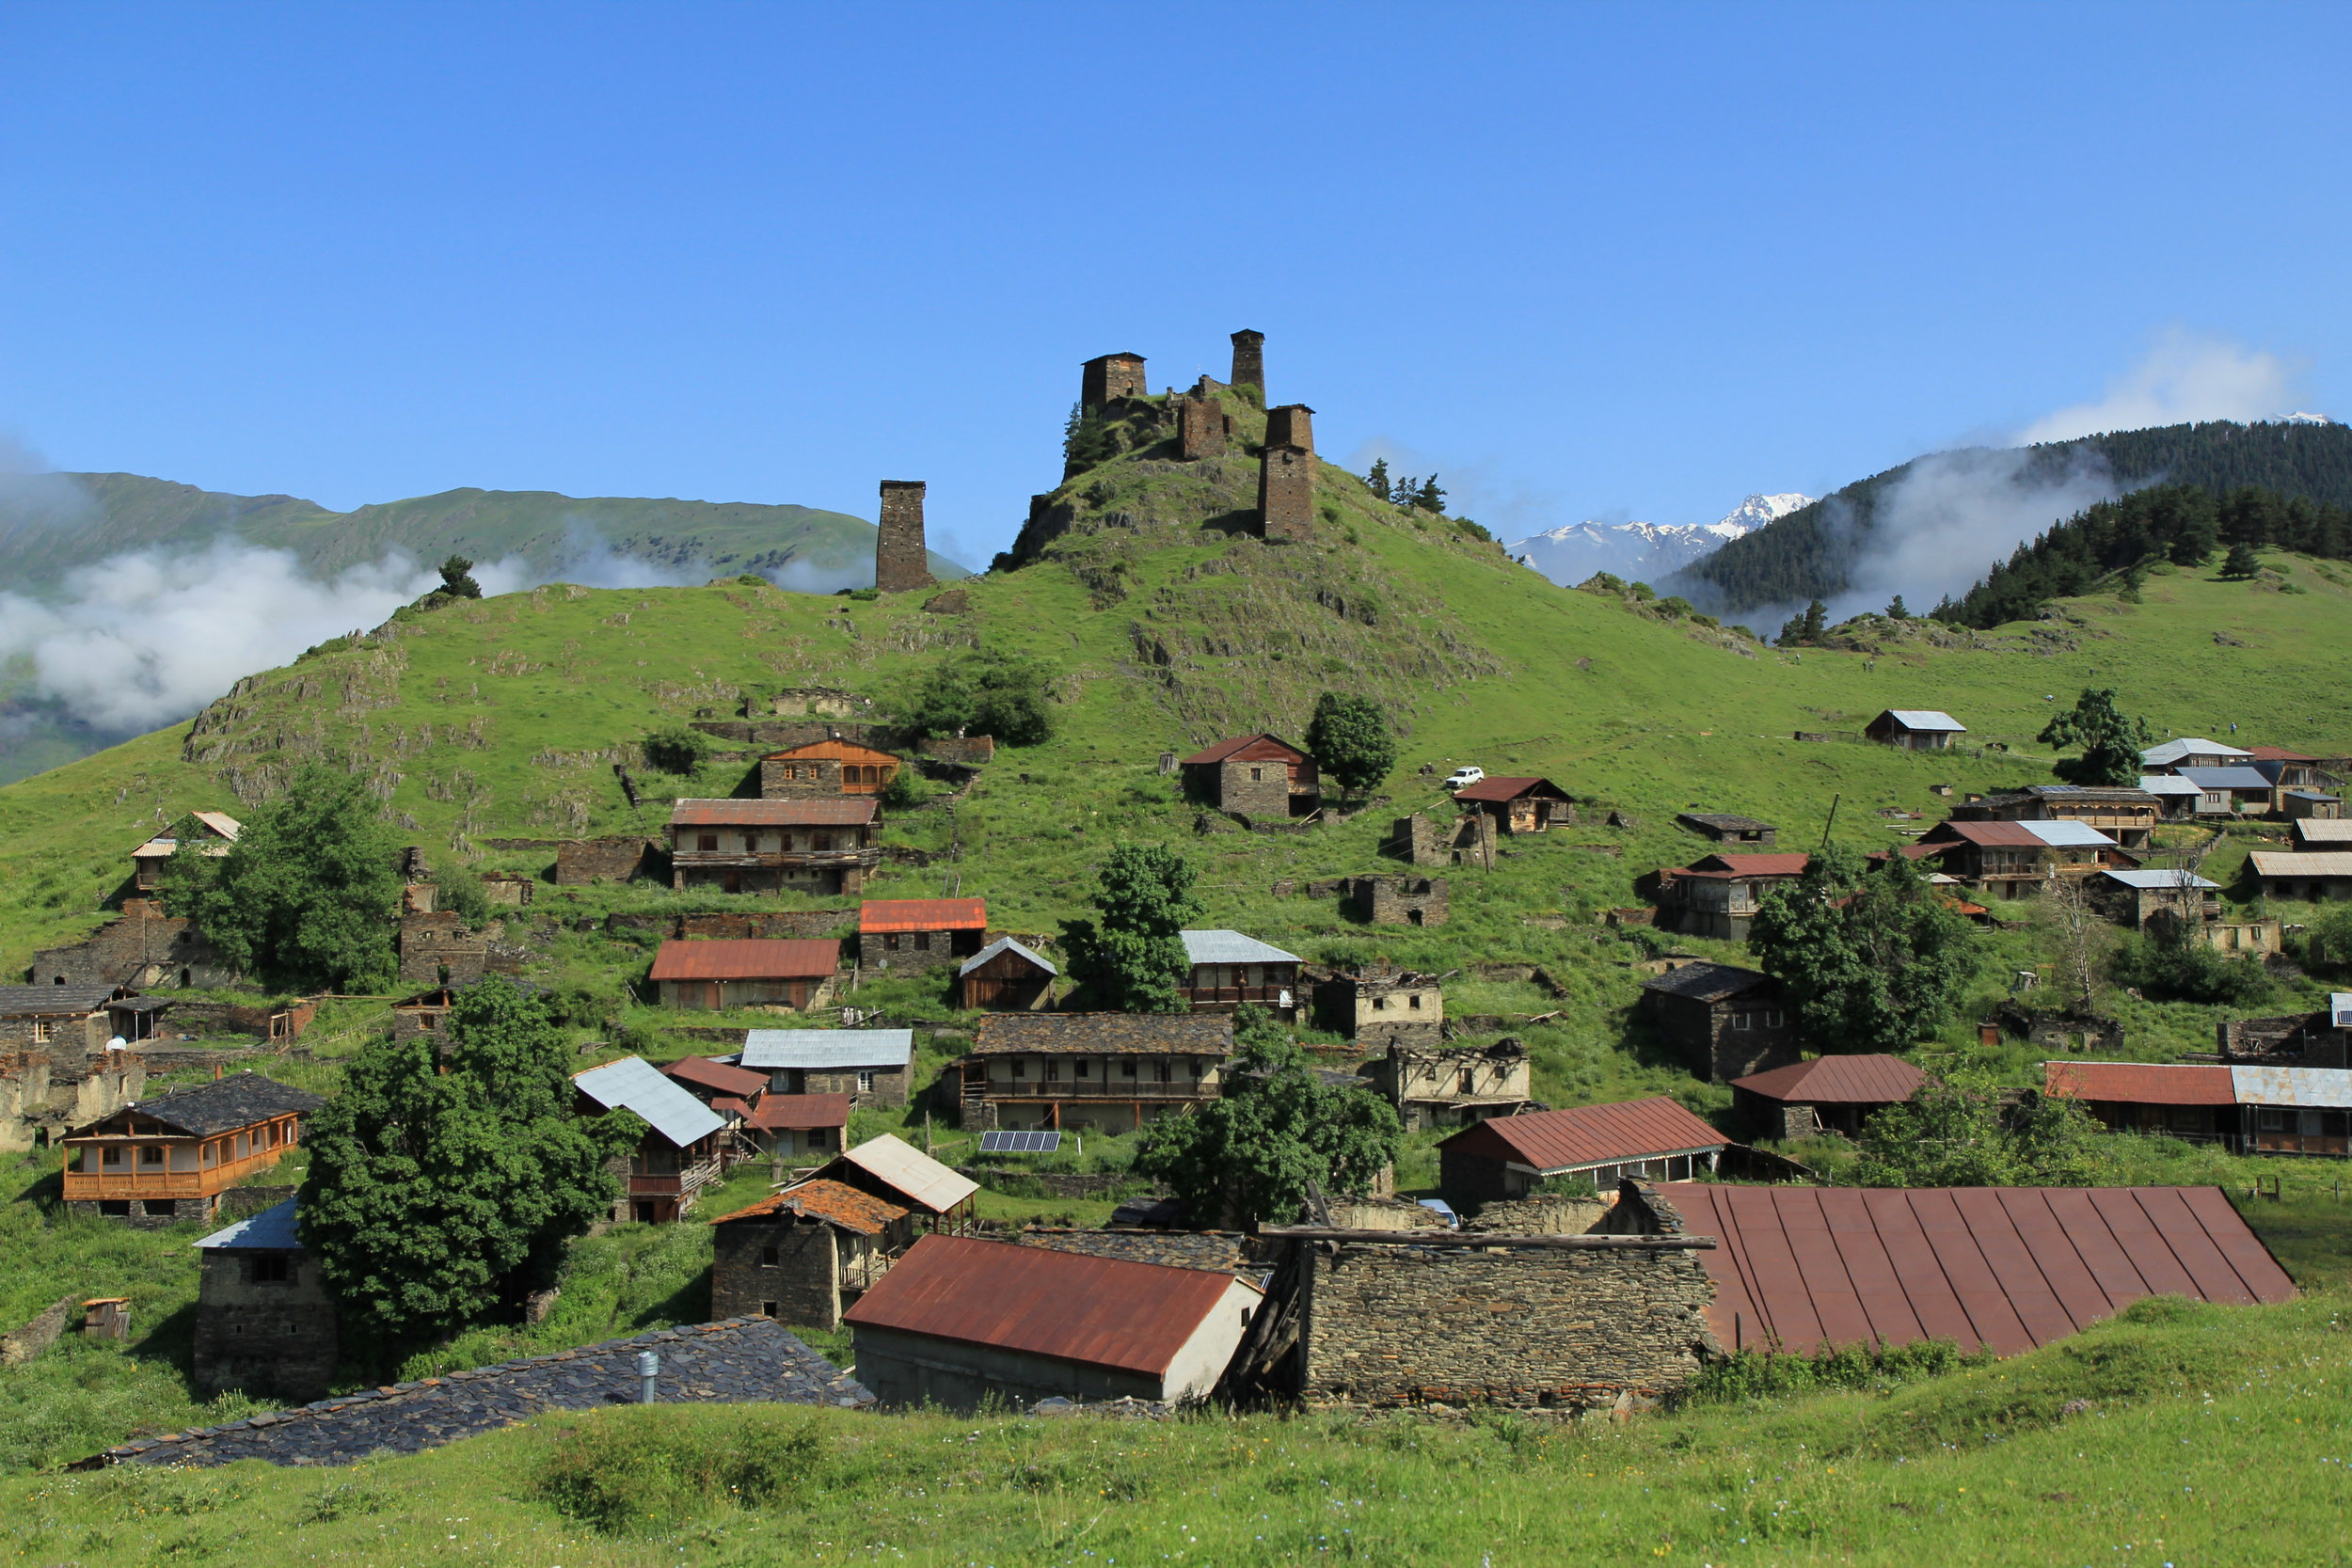 014 Georgia Village in Tusheti.jpg